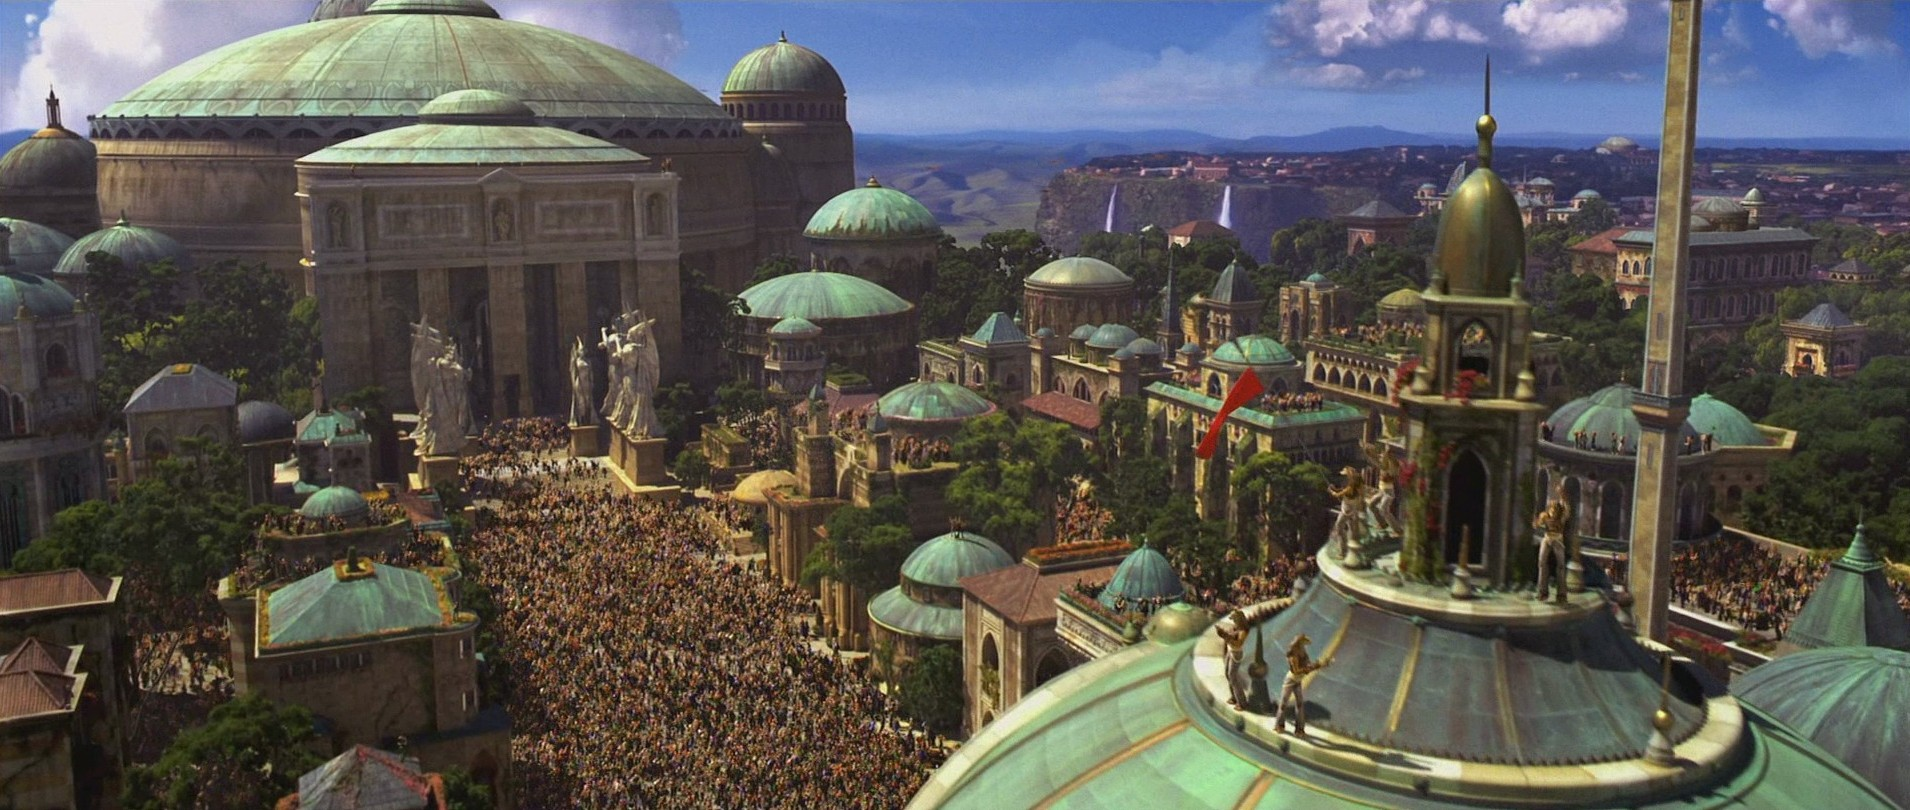 Theed, the Naboo Capital with its artistic architecture